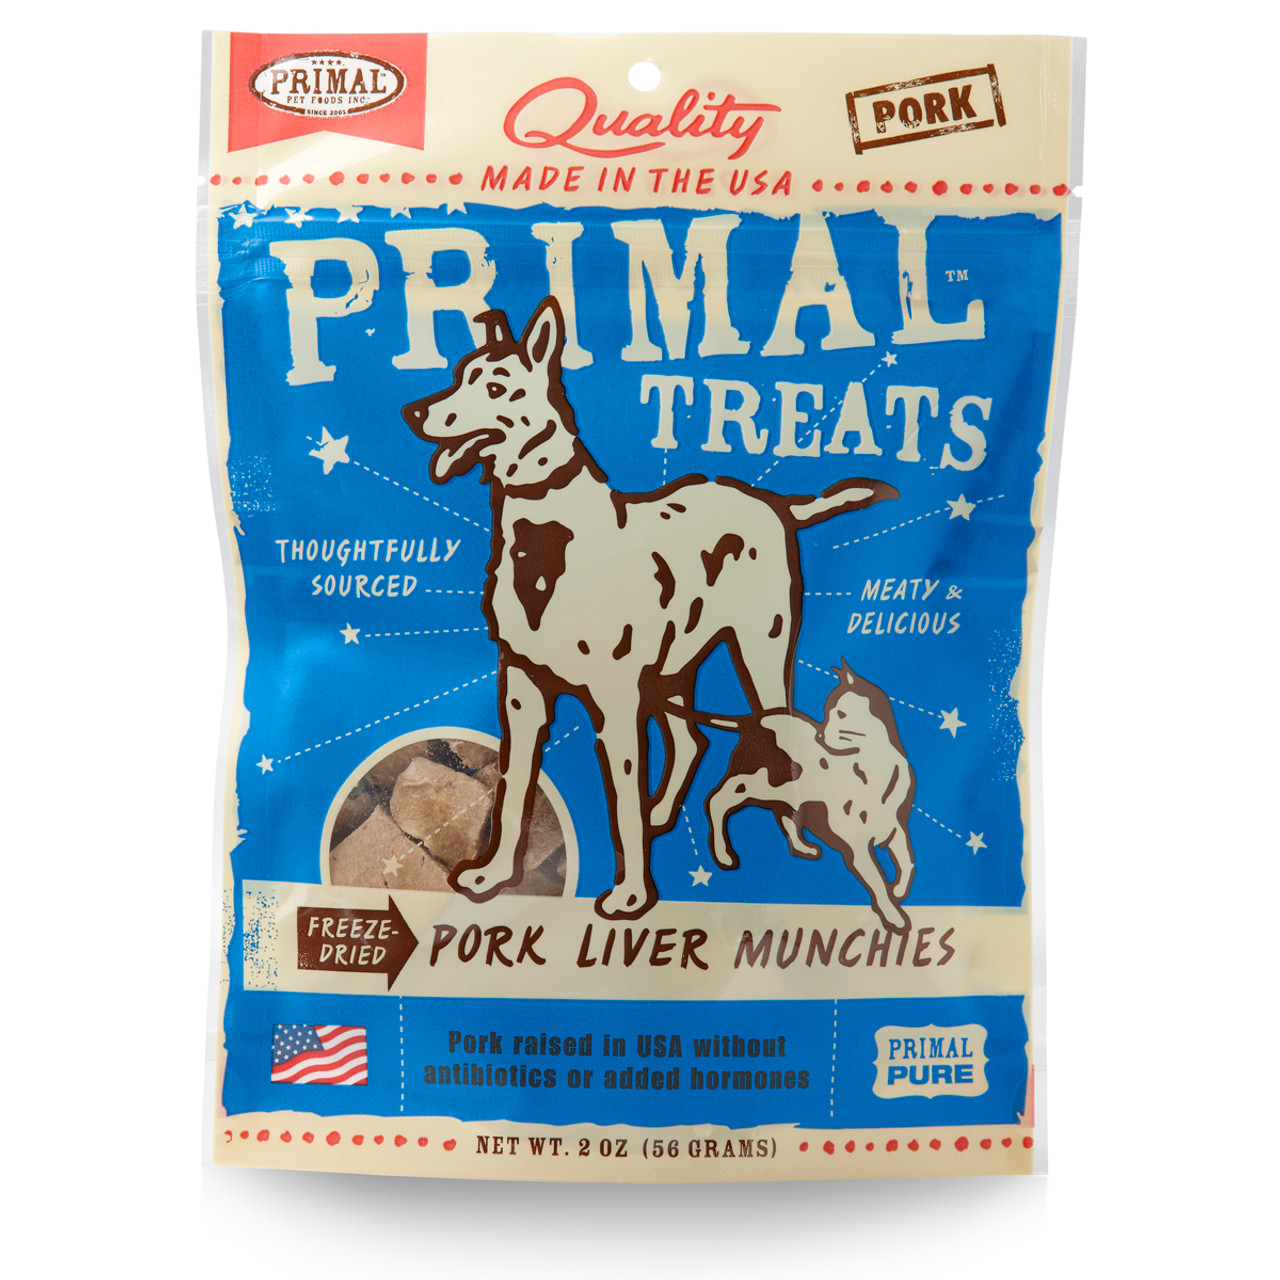 Primal Pork Liver Munchies Freeze Dried Dog & Cat Treats